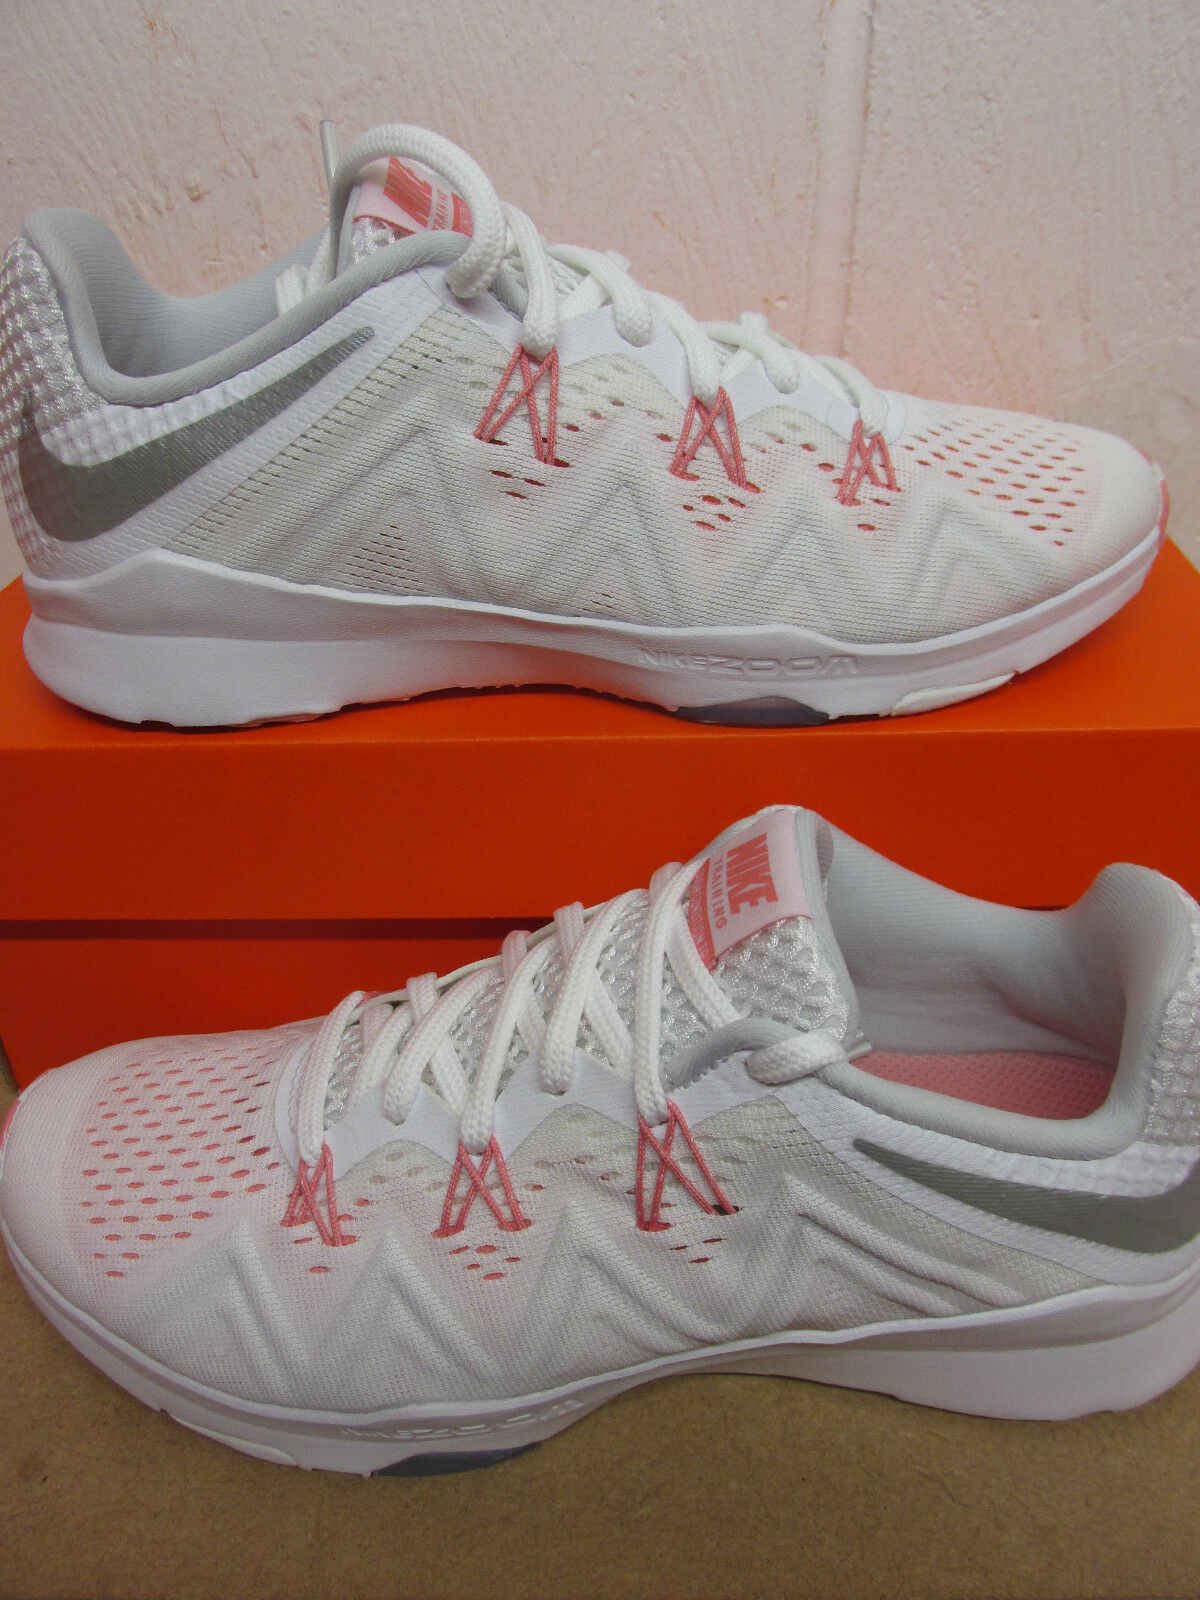 NIke Damenschuhe Zoom Condition TR PRM Running Trainers 881596 100 Sneakers Schuhes